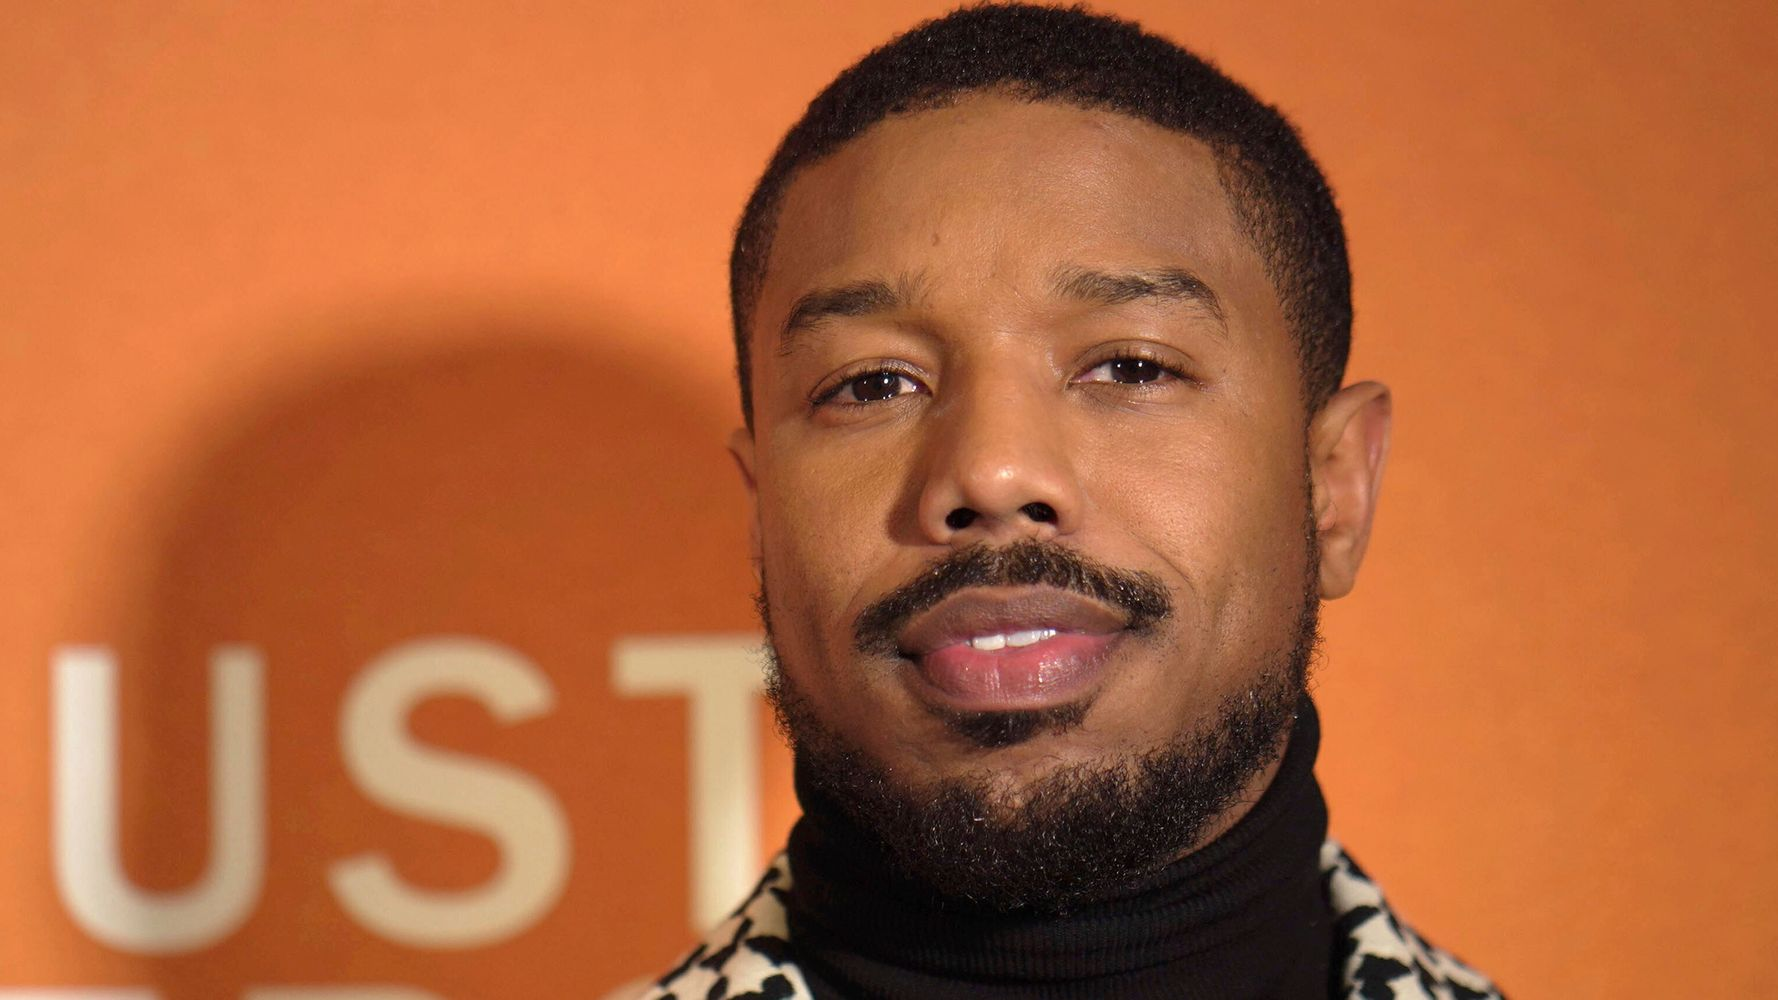 Michael B. Jordan Revealed As People's 'Sexiest Man Alive' In The Most 2020 Way